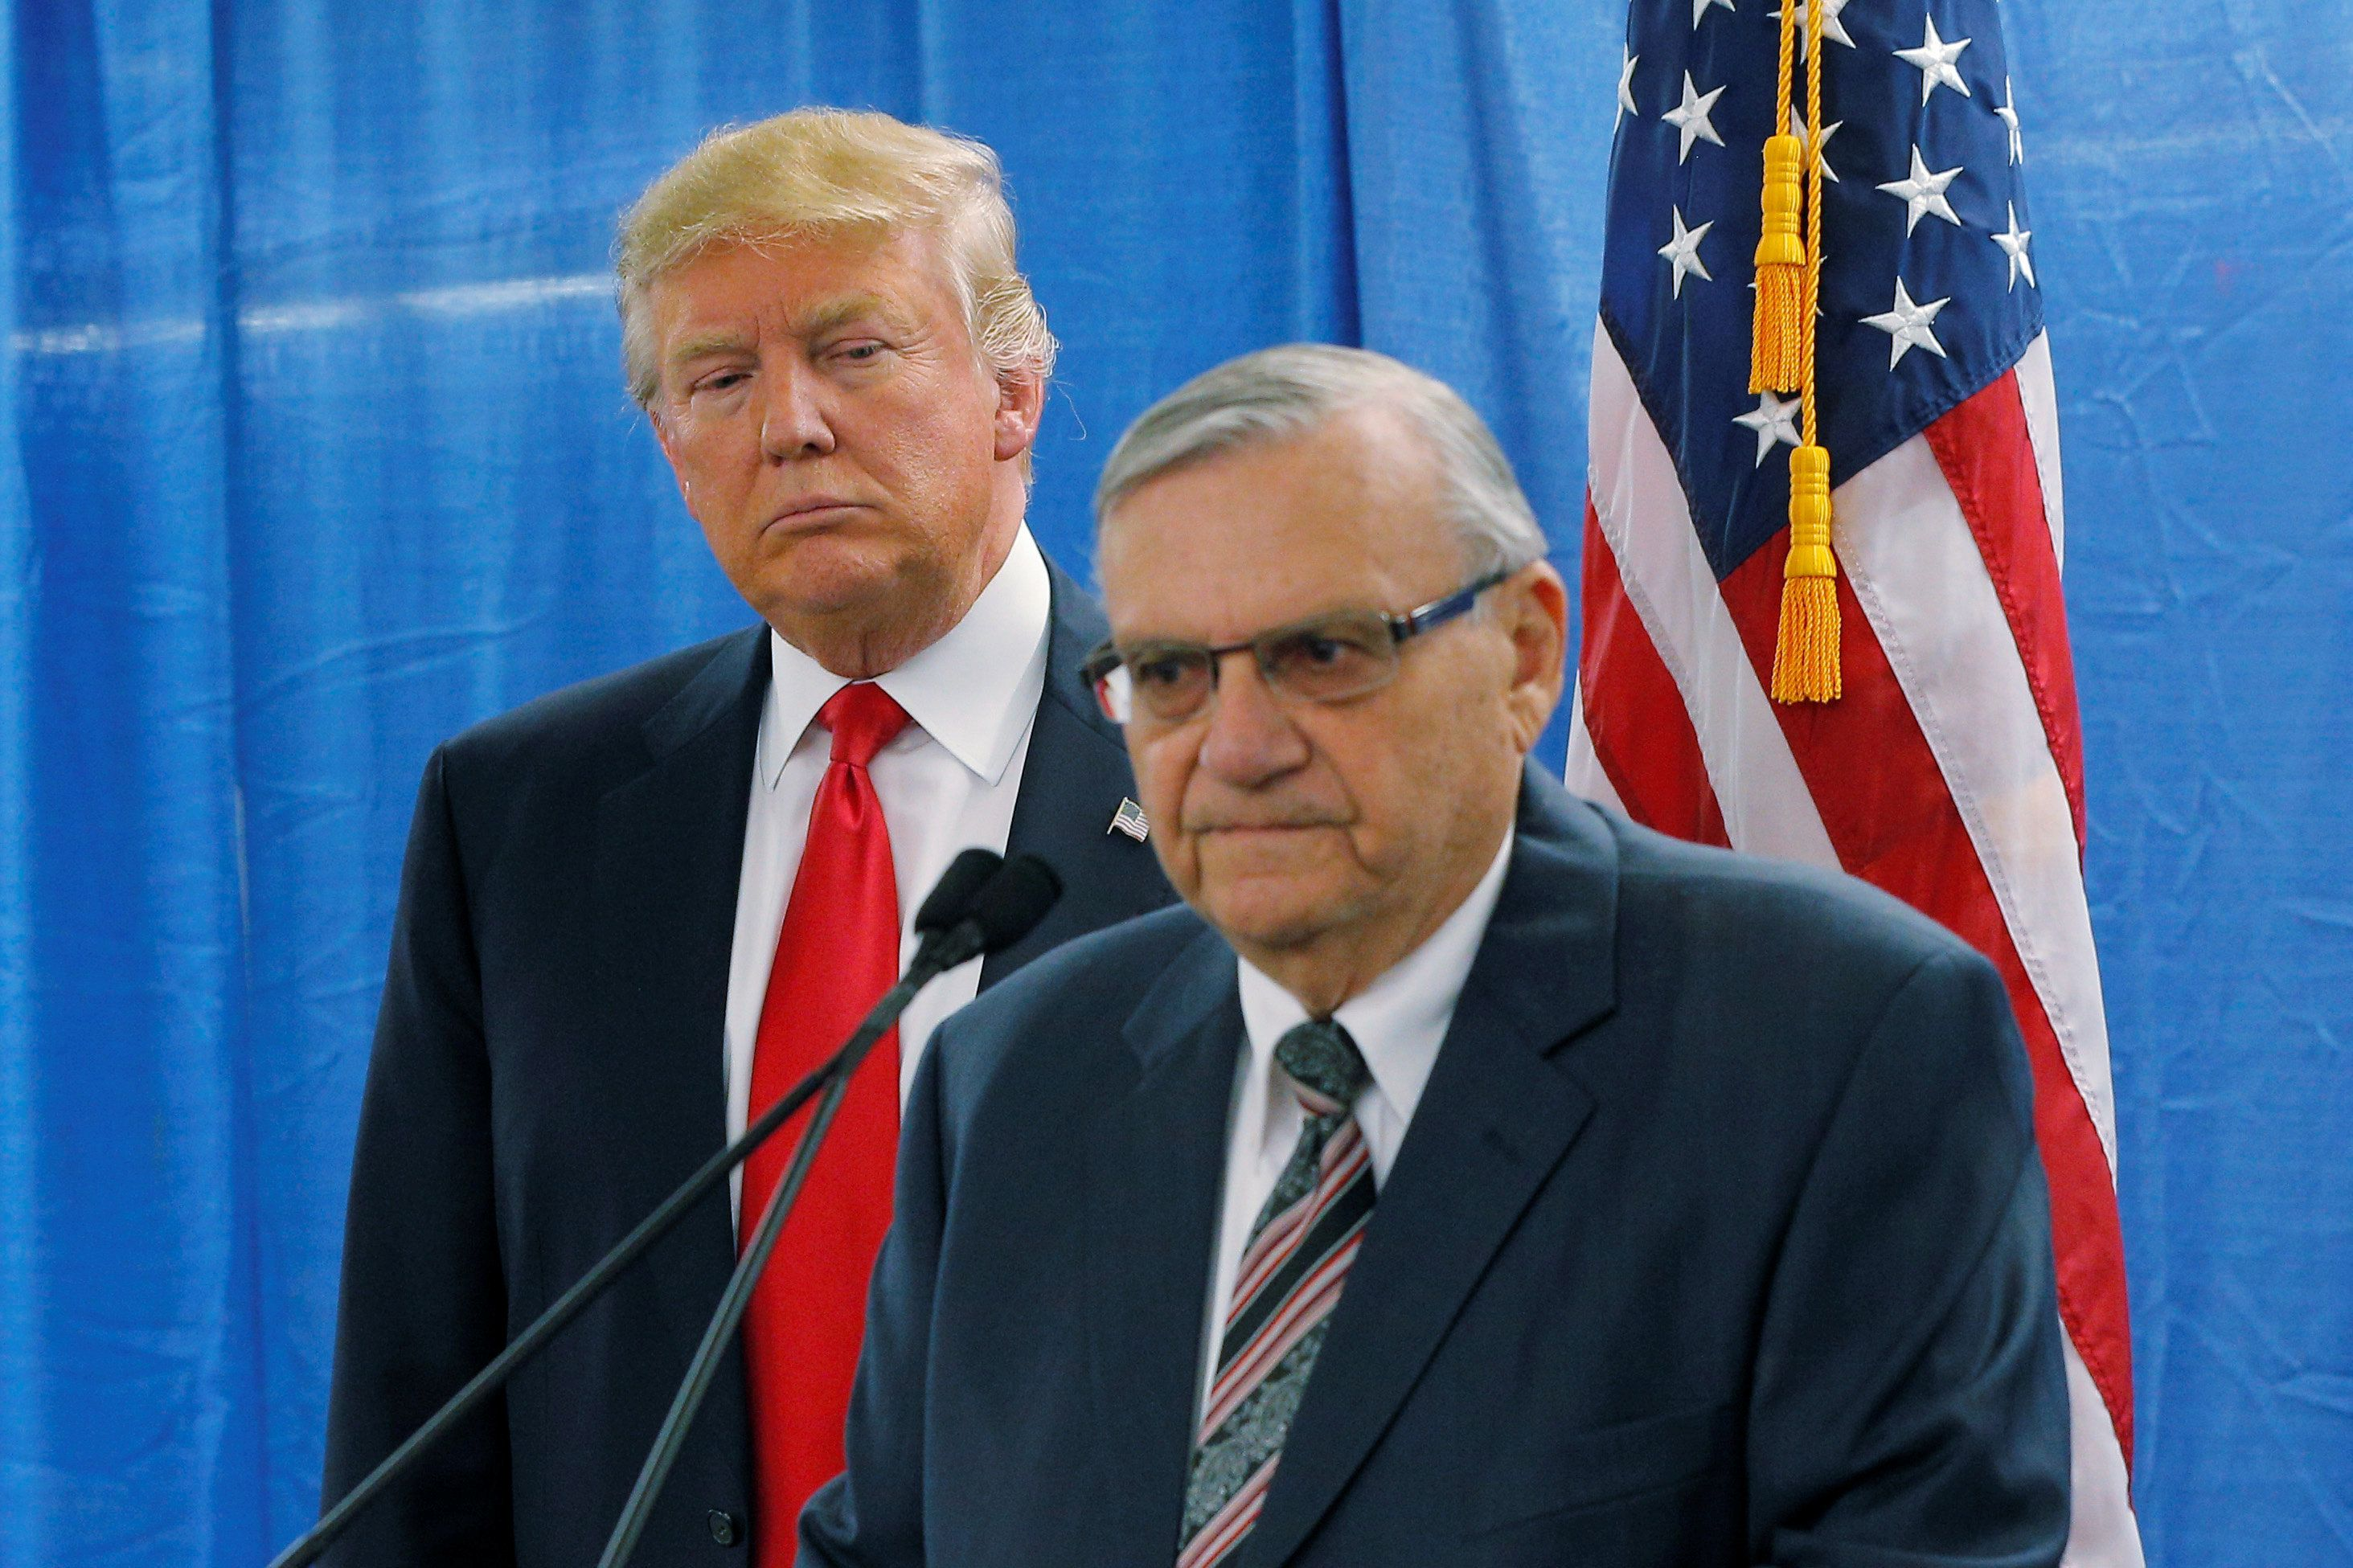 Maricopa County Sheriff Joe Arpaio talks up Donald Trump at a 2016 campaign rally in Arizona